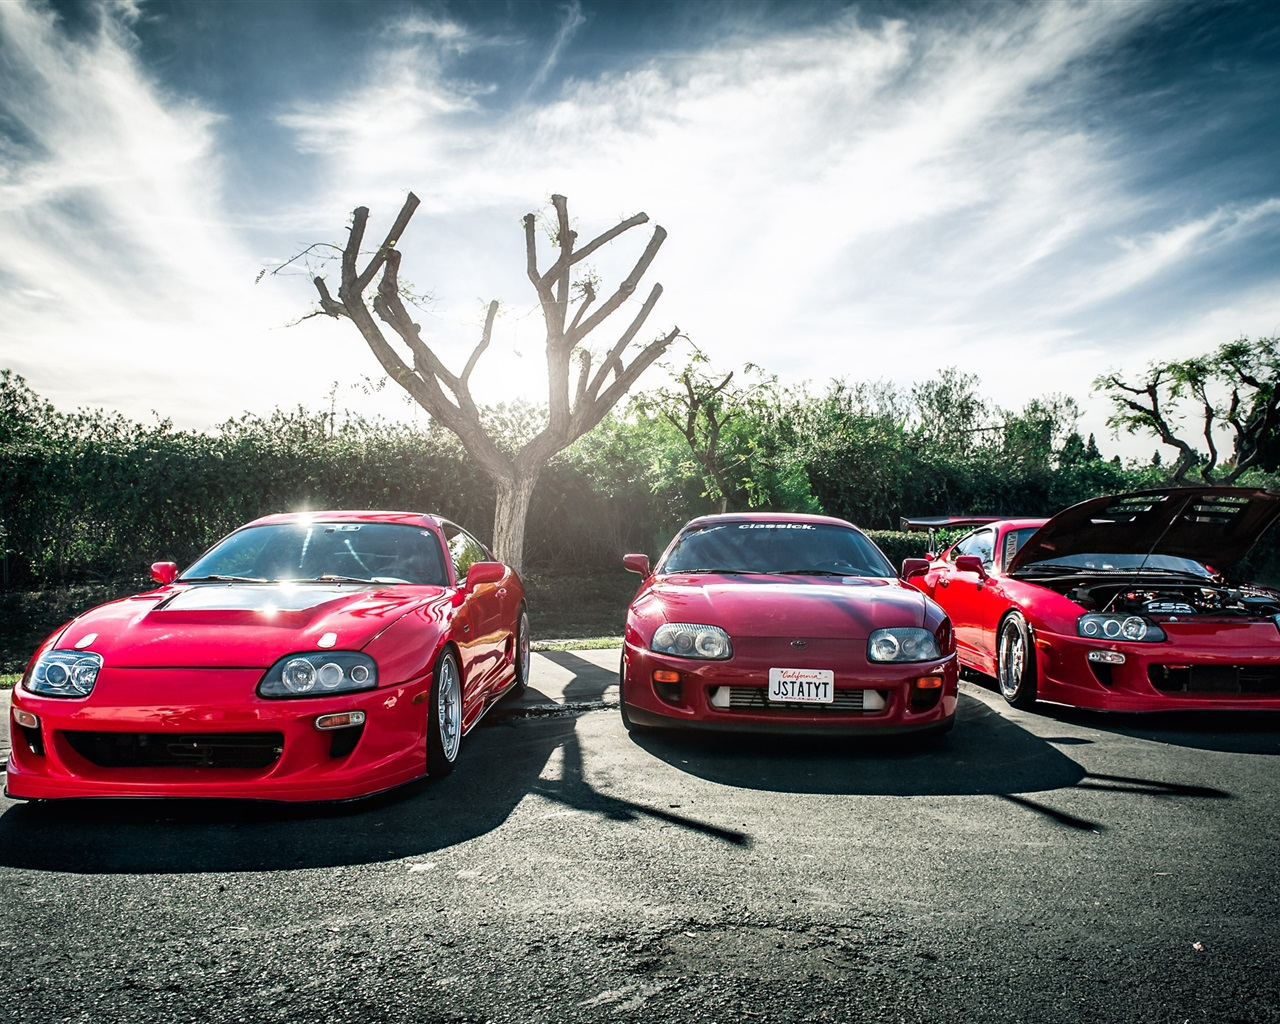 Toyota red supercar Wallpaper 1280x1024 resolution wallpaper 1280x1024